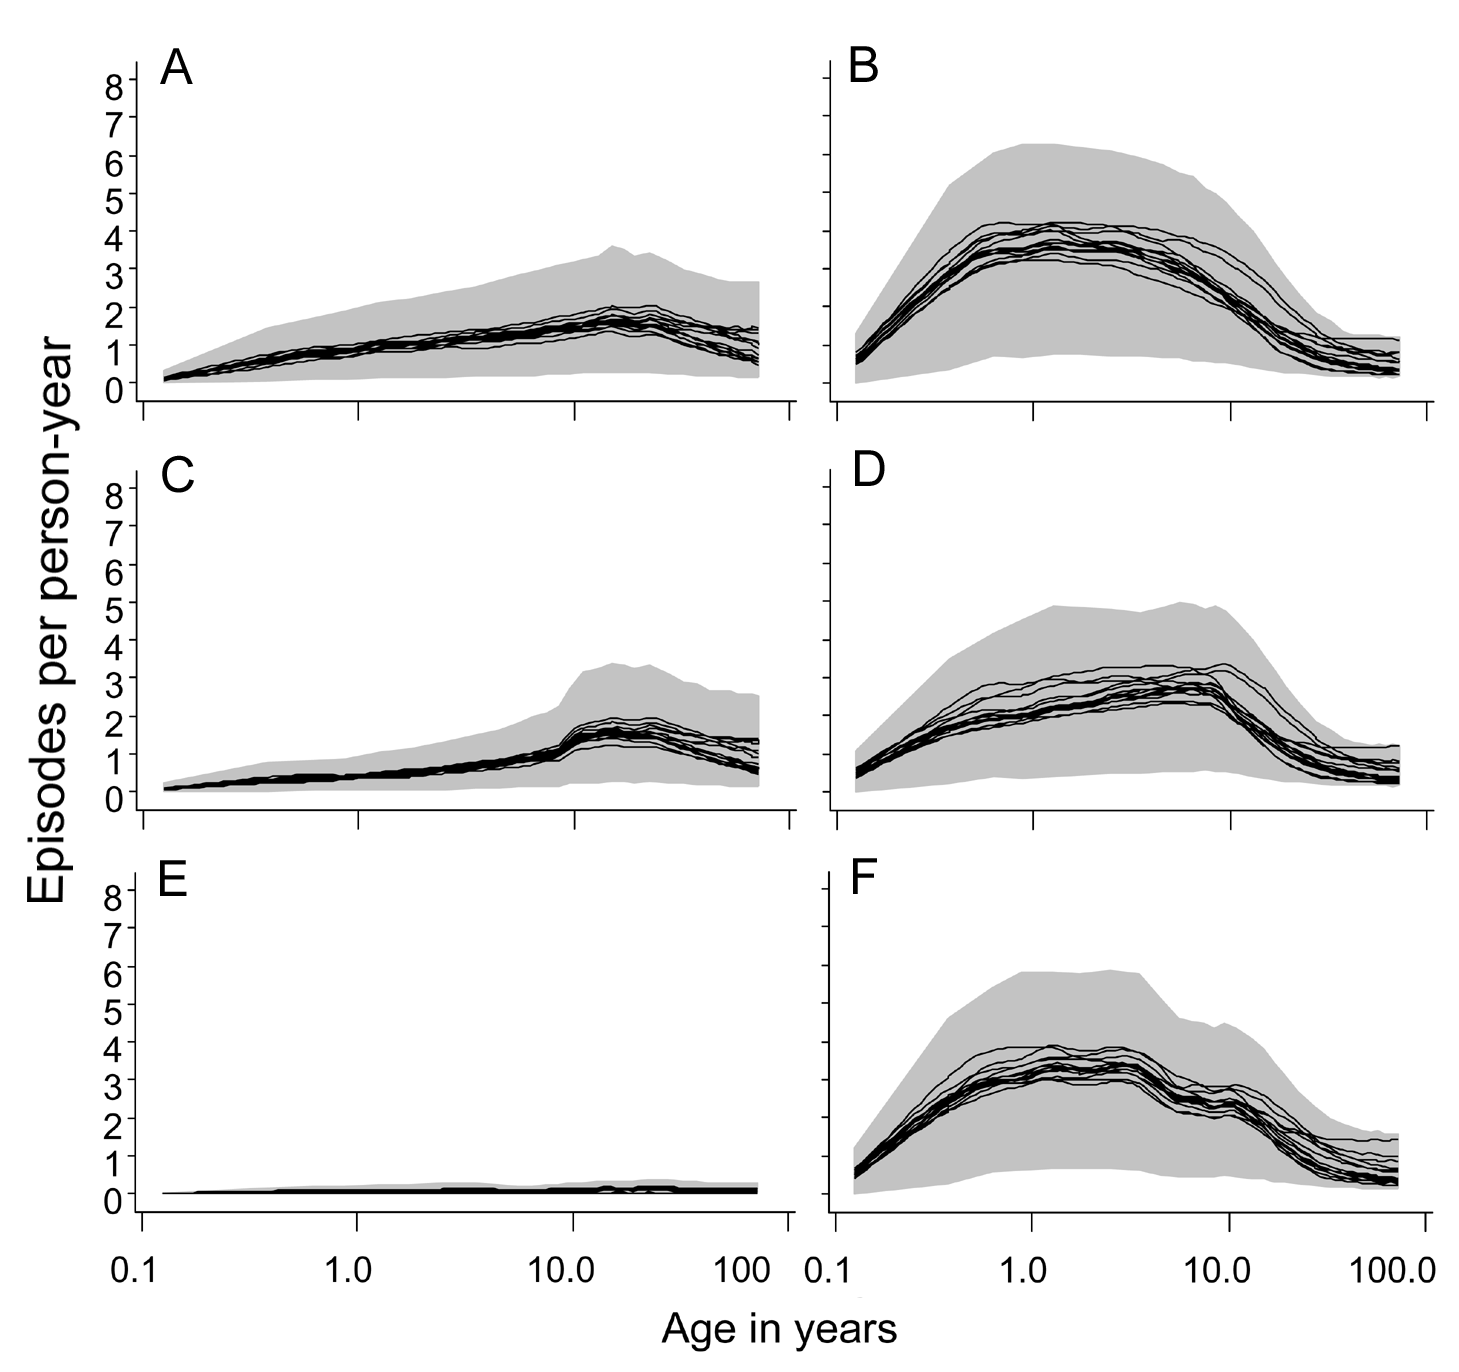 Age incidence curves during the tenth year of follow-up.